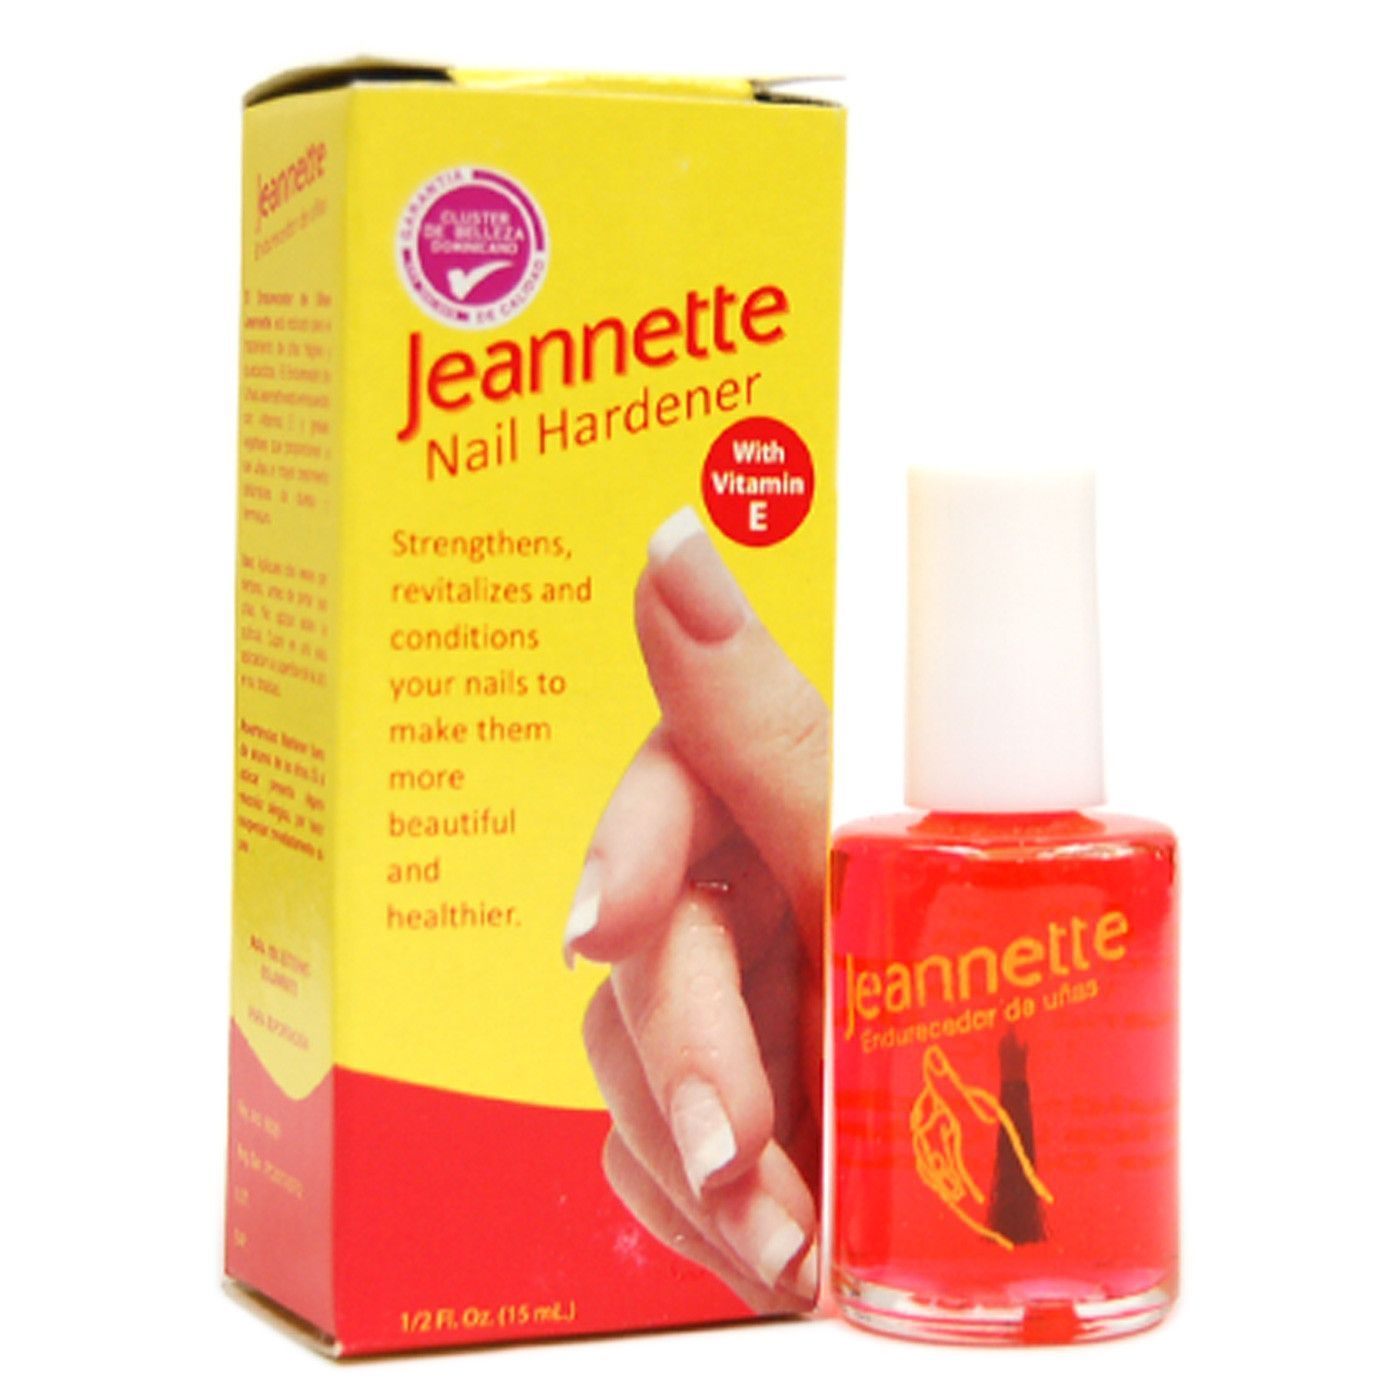 Dr Collado Jeannette Nail Hardener with Vitamin E 0.5oz | Products ...